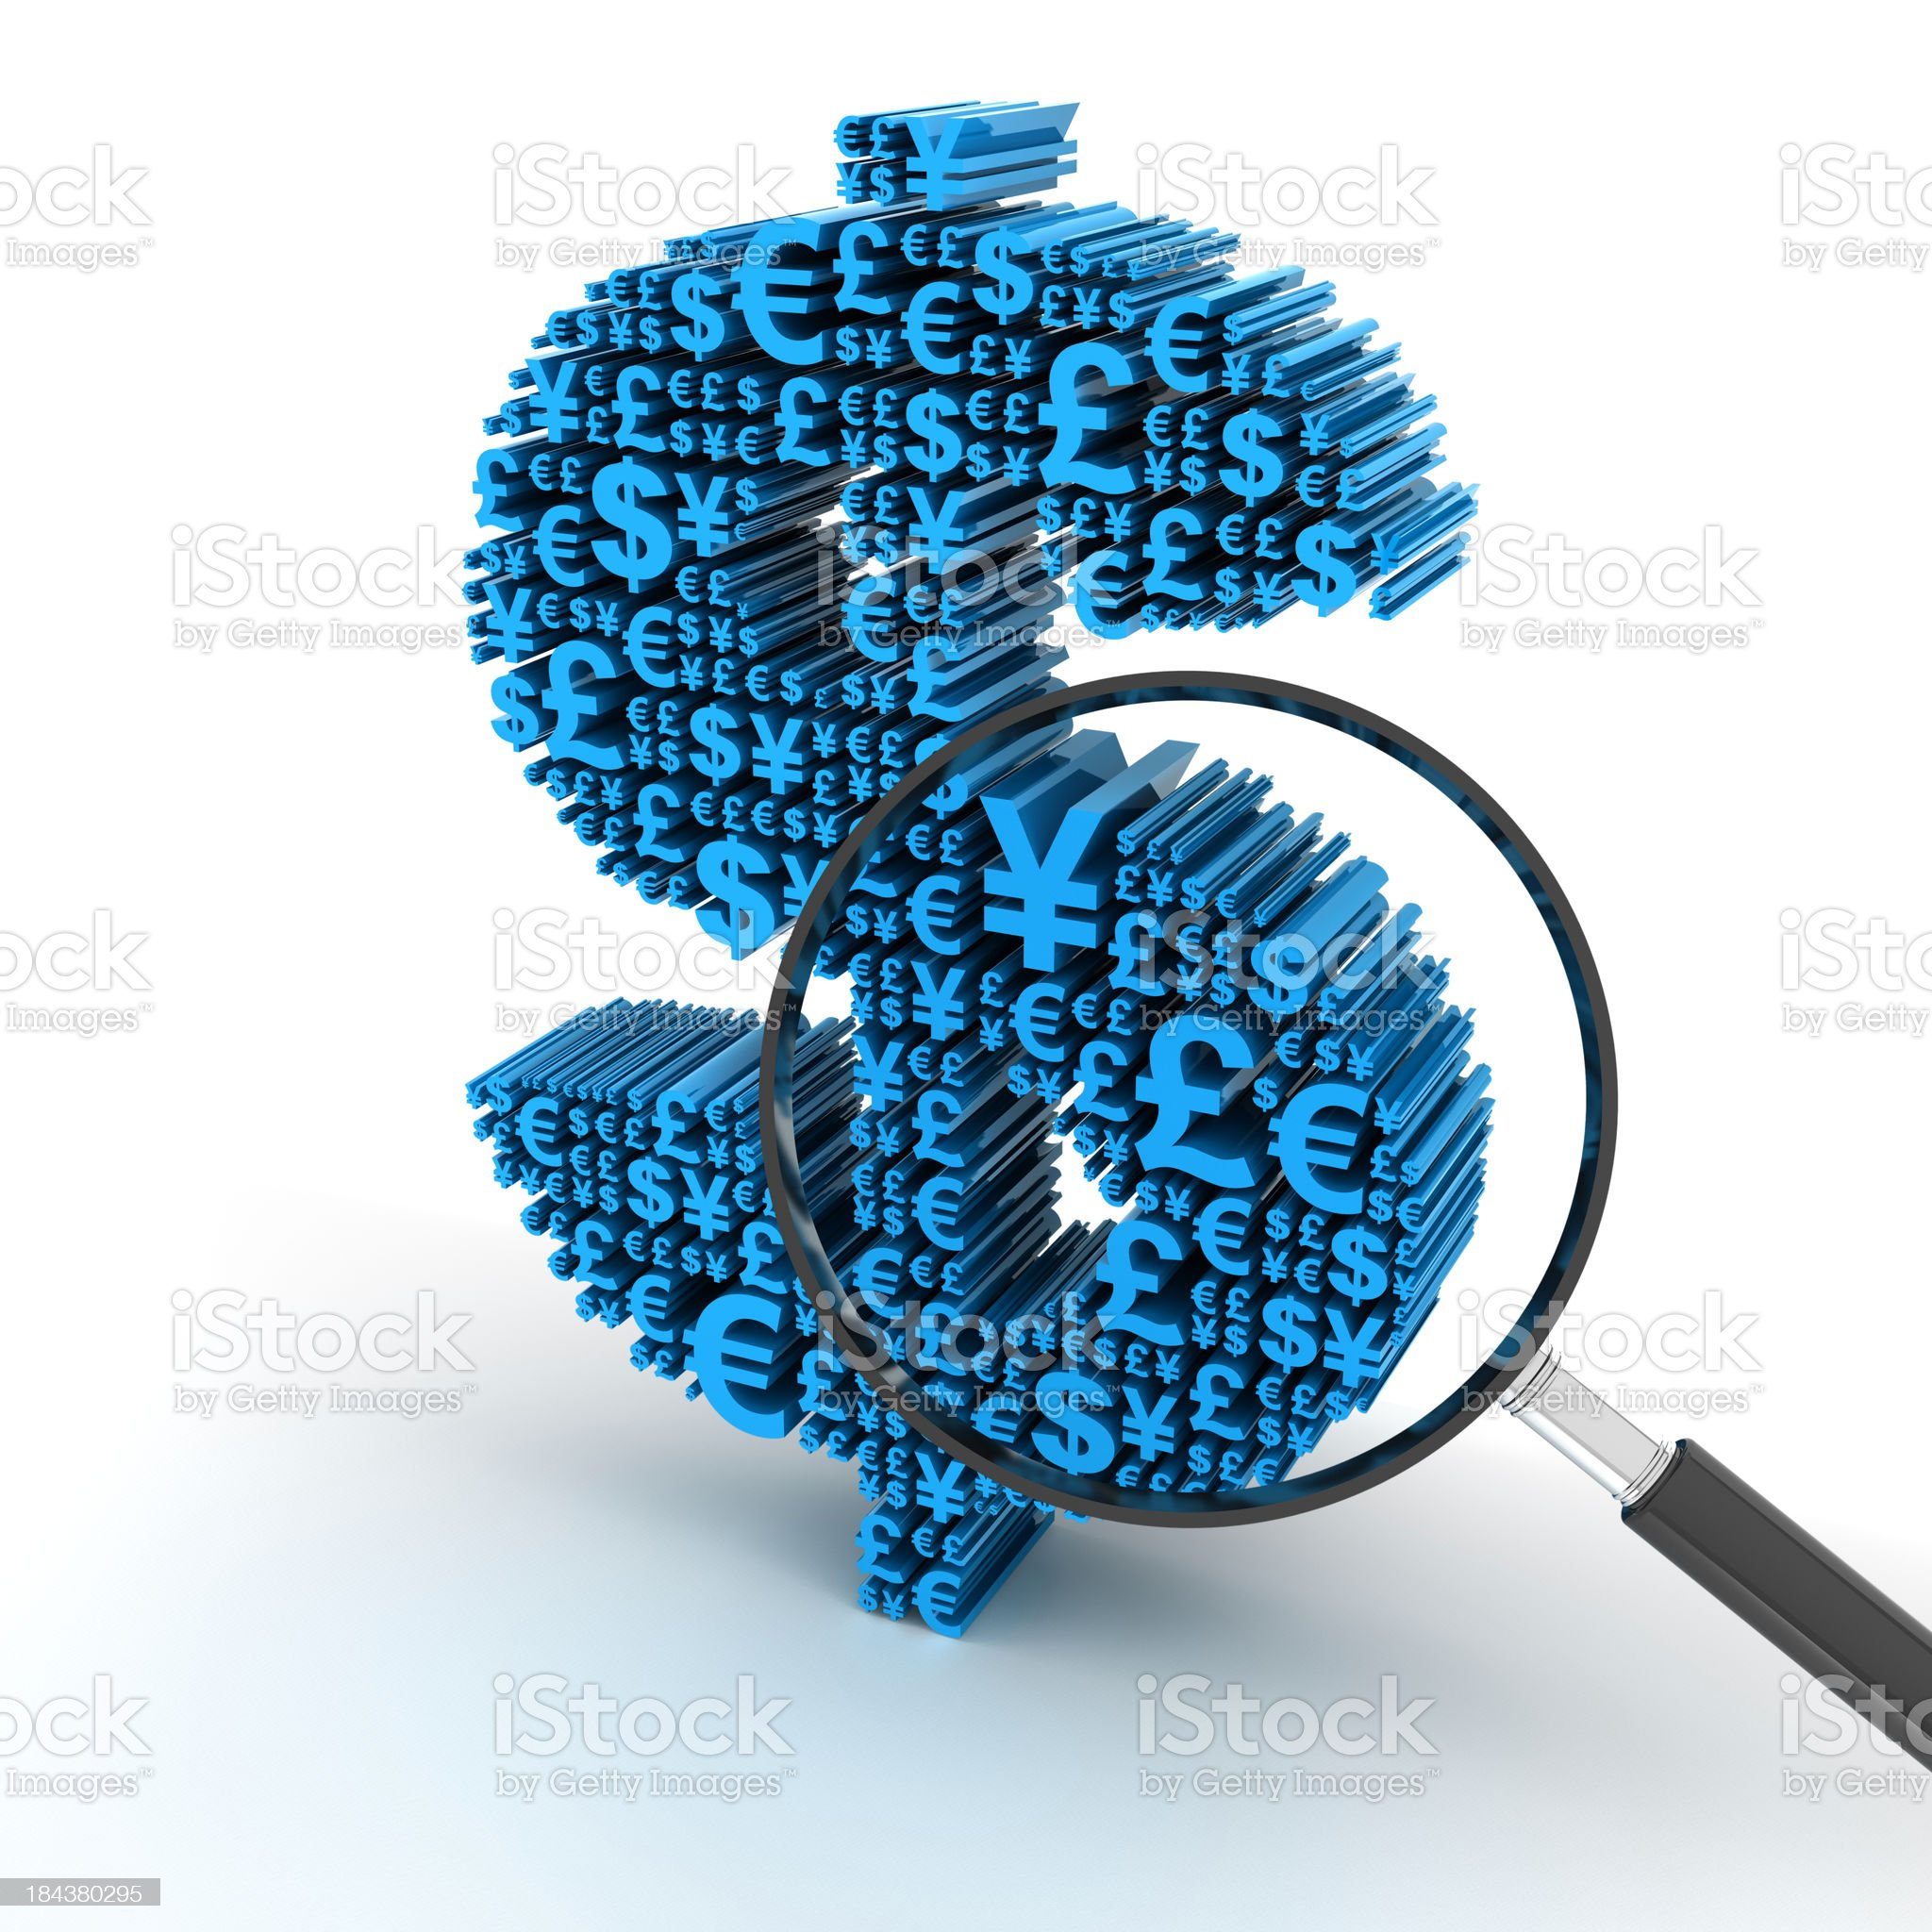 Dollar signs formed by major currency symbols, with magnifying glass royalty-free stock photo